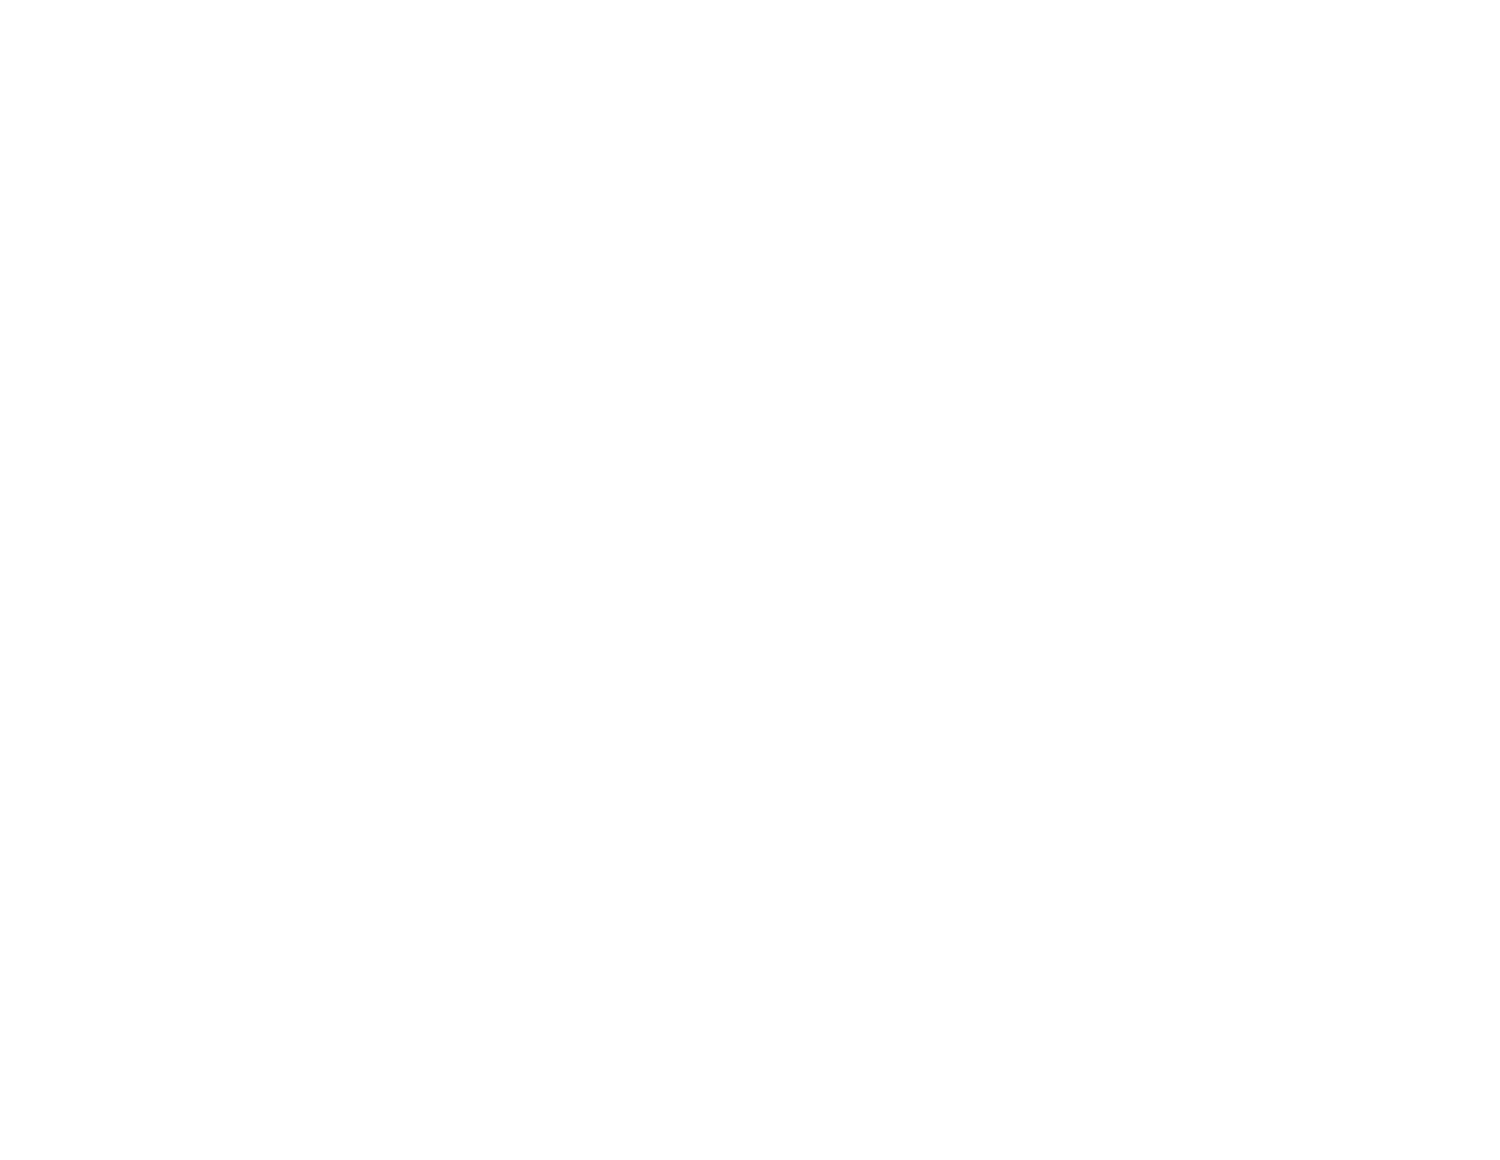 Silky Oaks Medical Practice